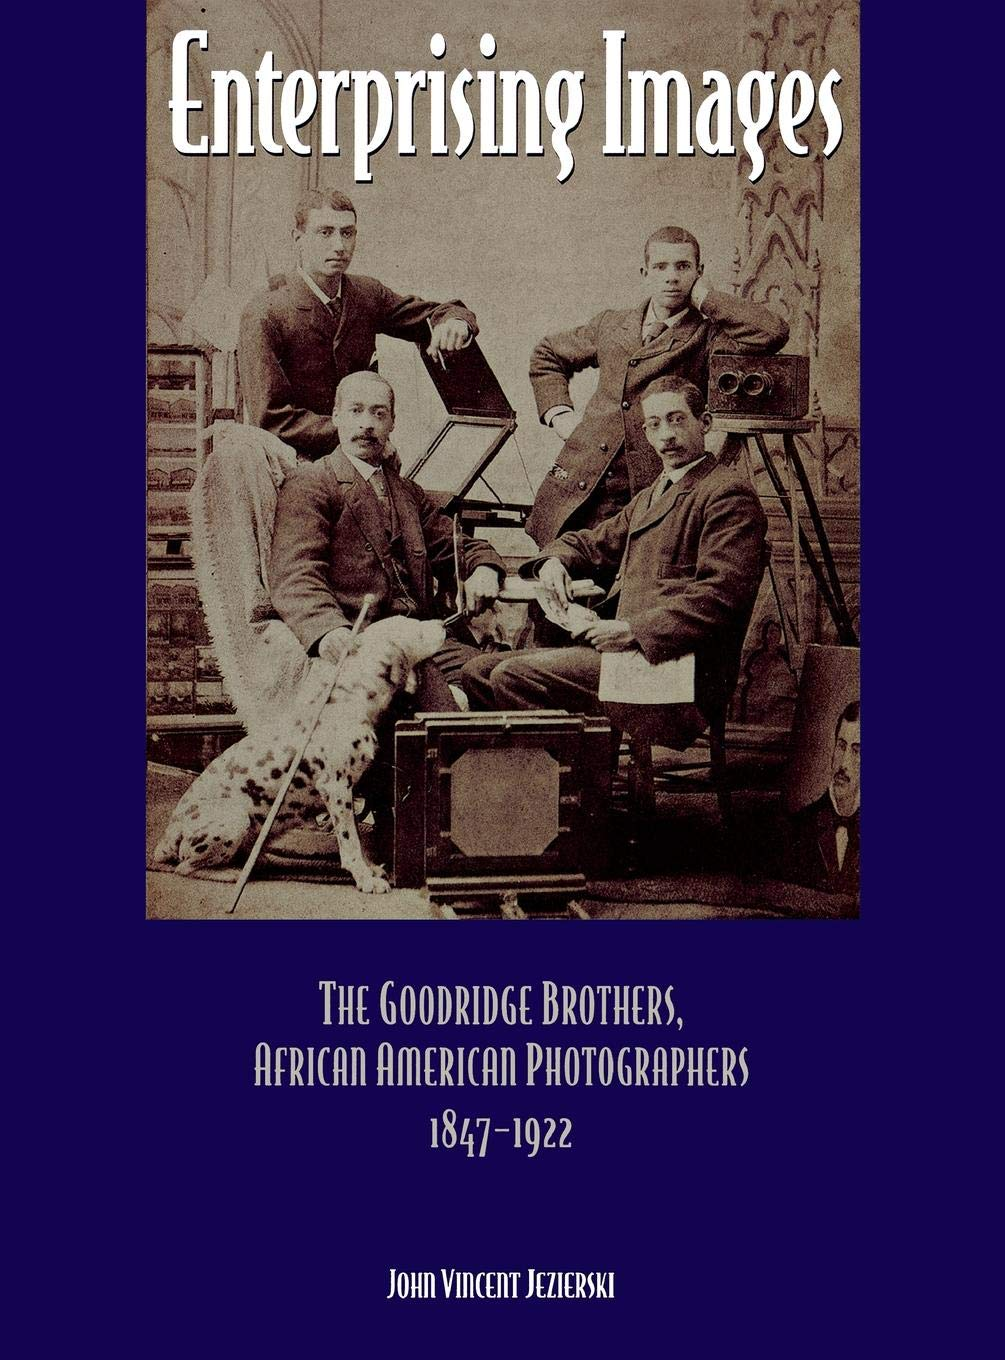 Enterprising Images: The Goodridge Brothers, African American Photographers, 1847-1922 - John Vincent Jezierski